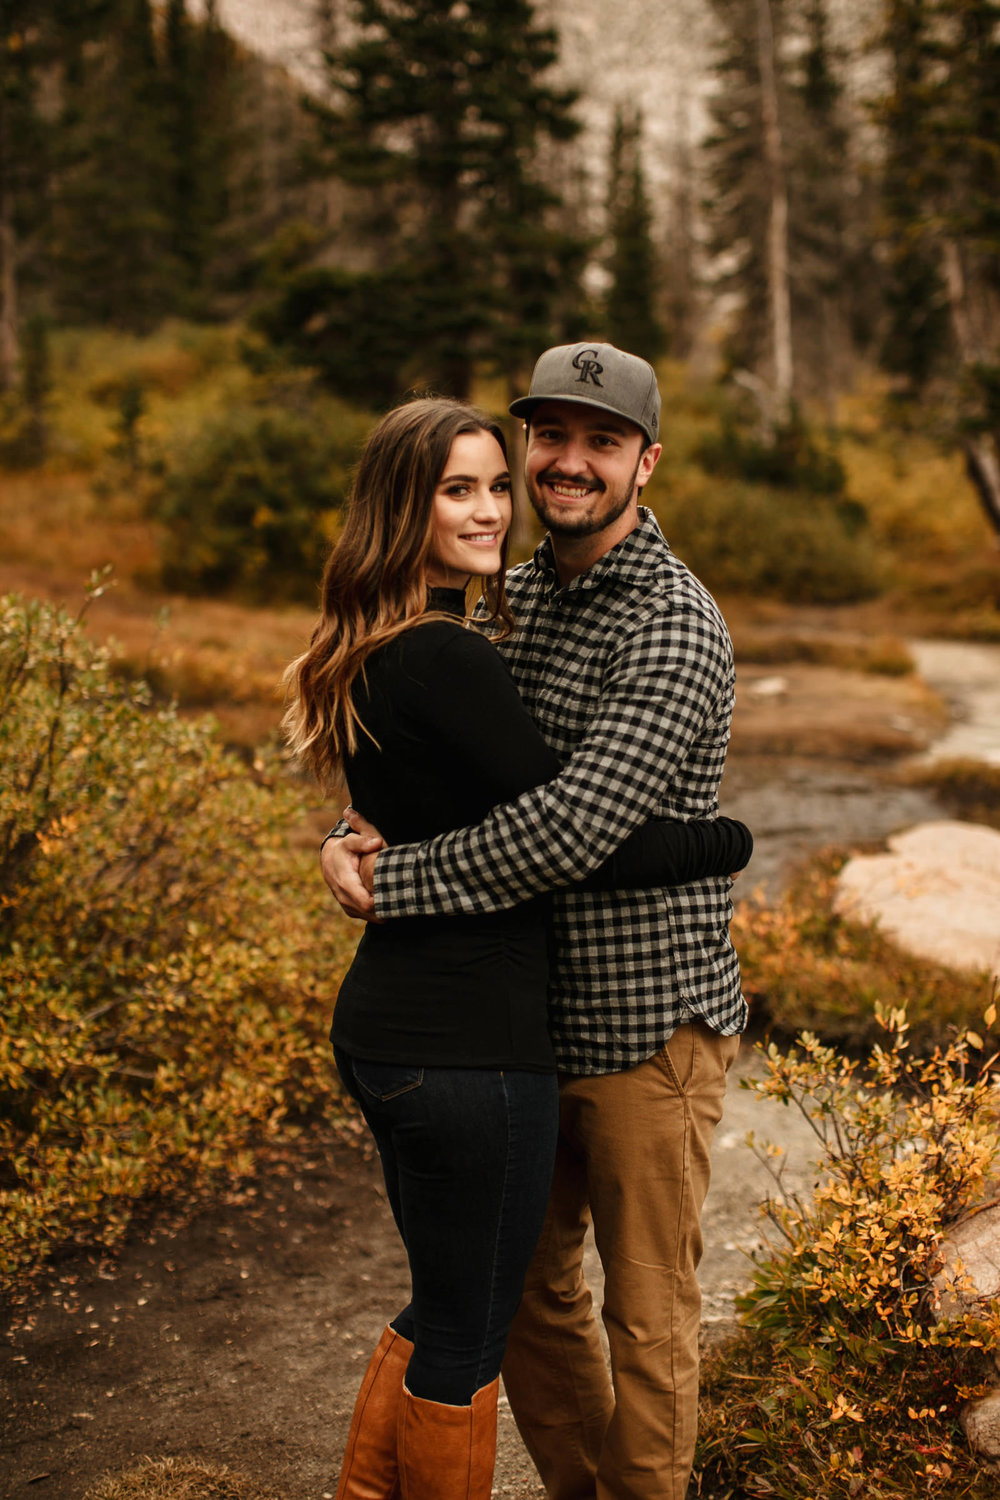 Liz Osban Photography Cheyenne Wyoming Engagement Wedding Photographer couple adventure elopement wedding laramie denver fort collins colorado rocky mountain national park12.jpg